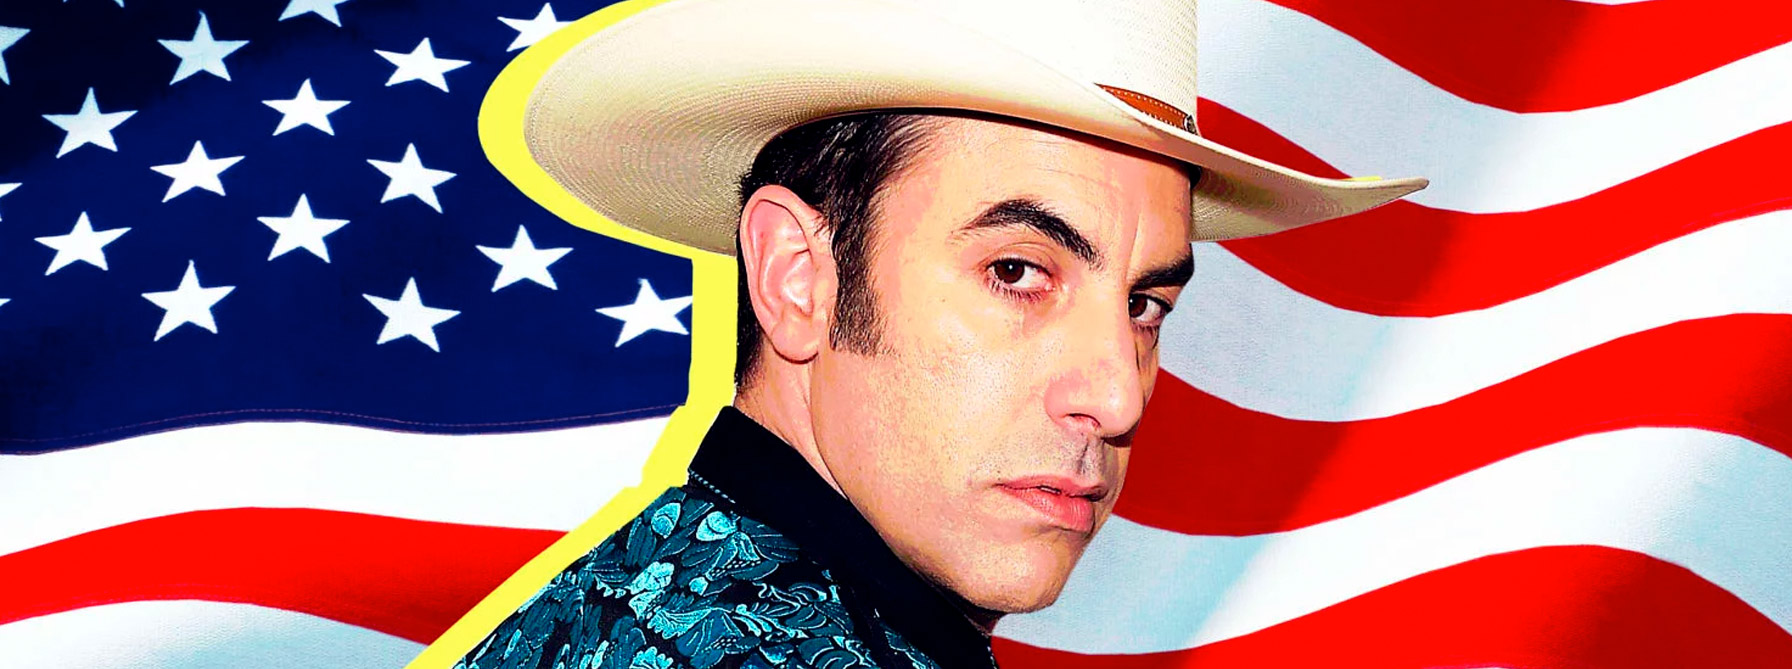 Who is America Sacha Baron Cohen's content marketing truths